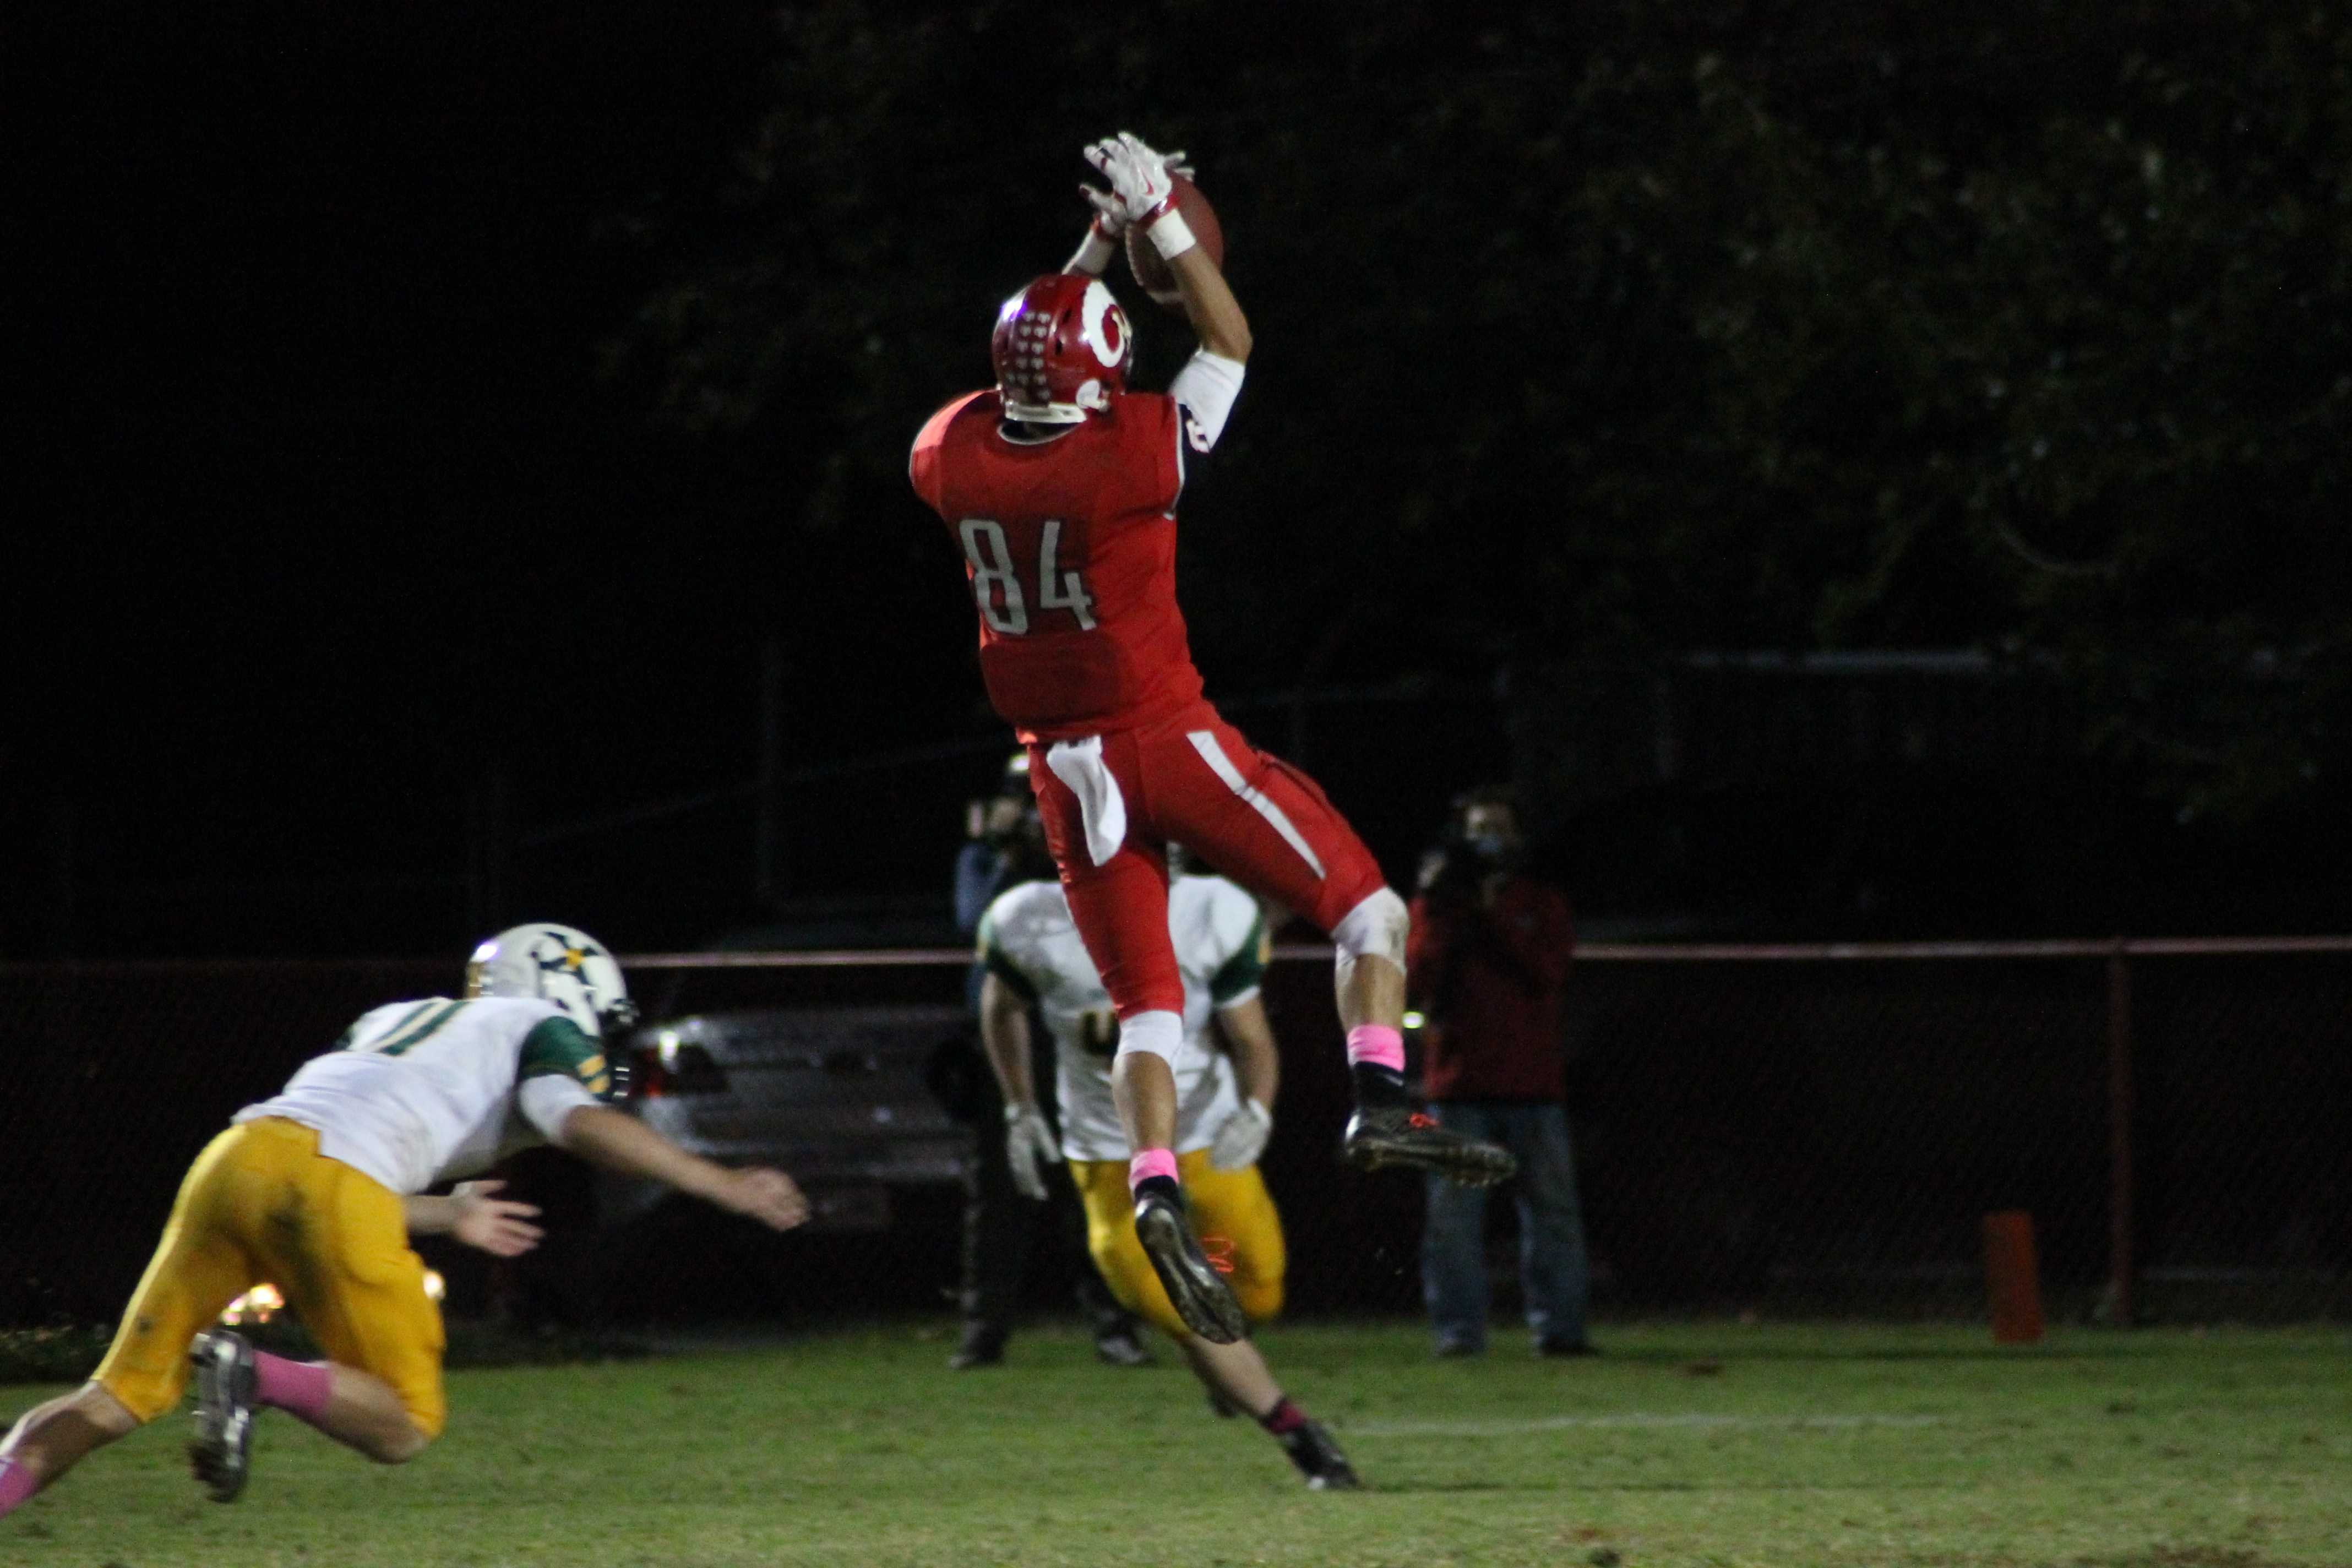 Eric Neimann (12, #84) catches a high pass early in the fourth to give the Crimsons some life. Photo by Roshan Duggineni